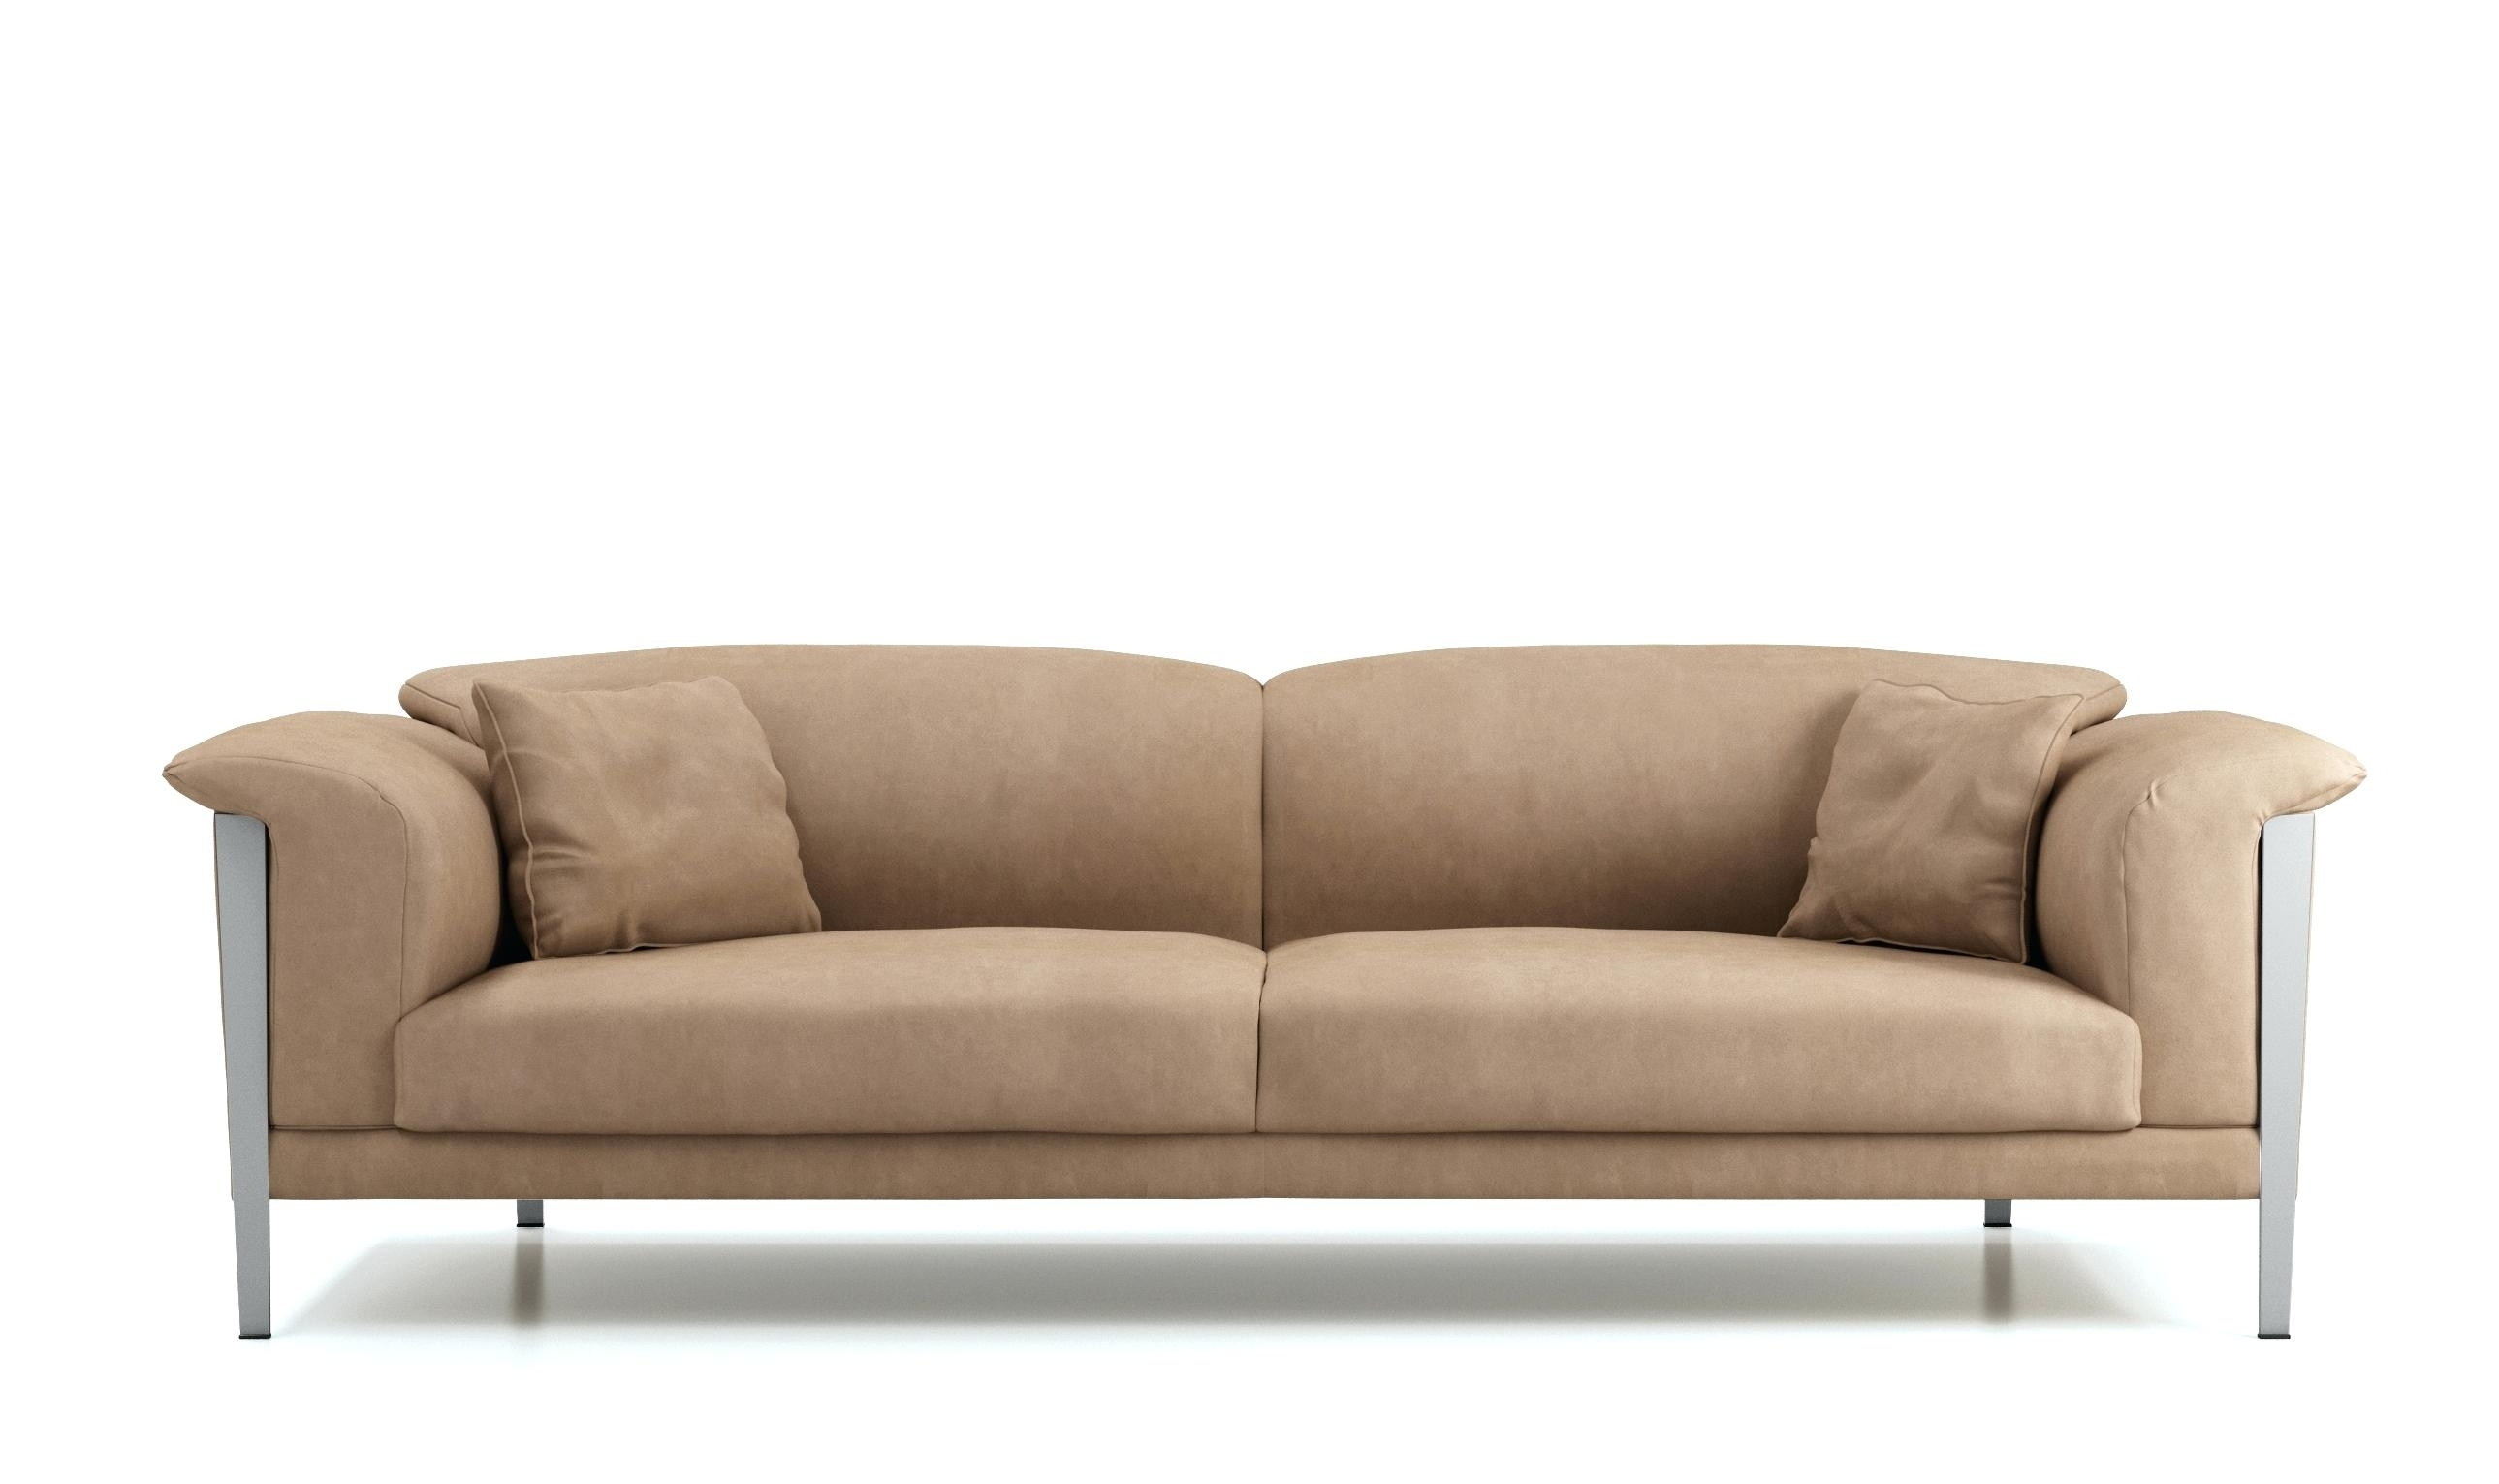 Soft Couches Leather Sofa Cleaning Childrens Sofas – Thedwelling For Soft Sofas (View 7 of 10)